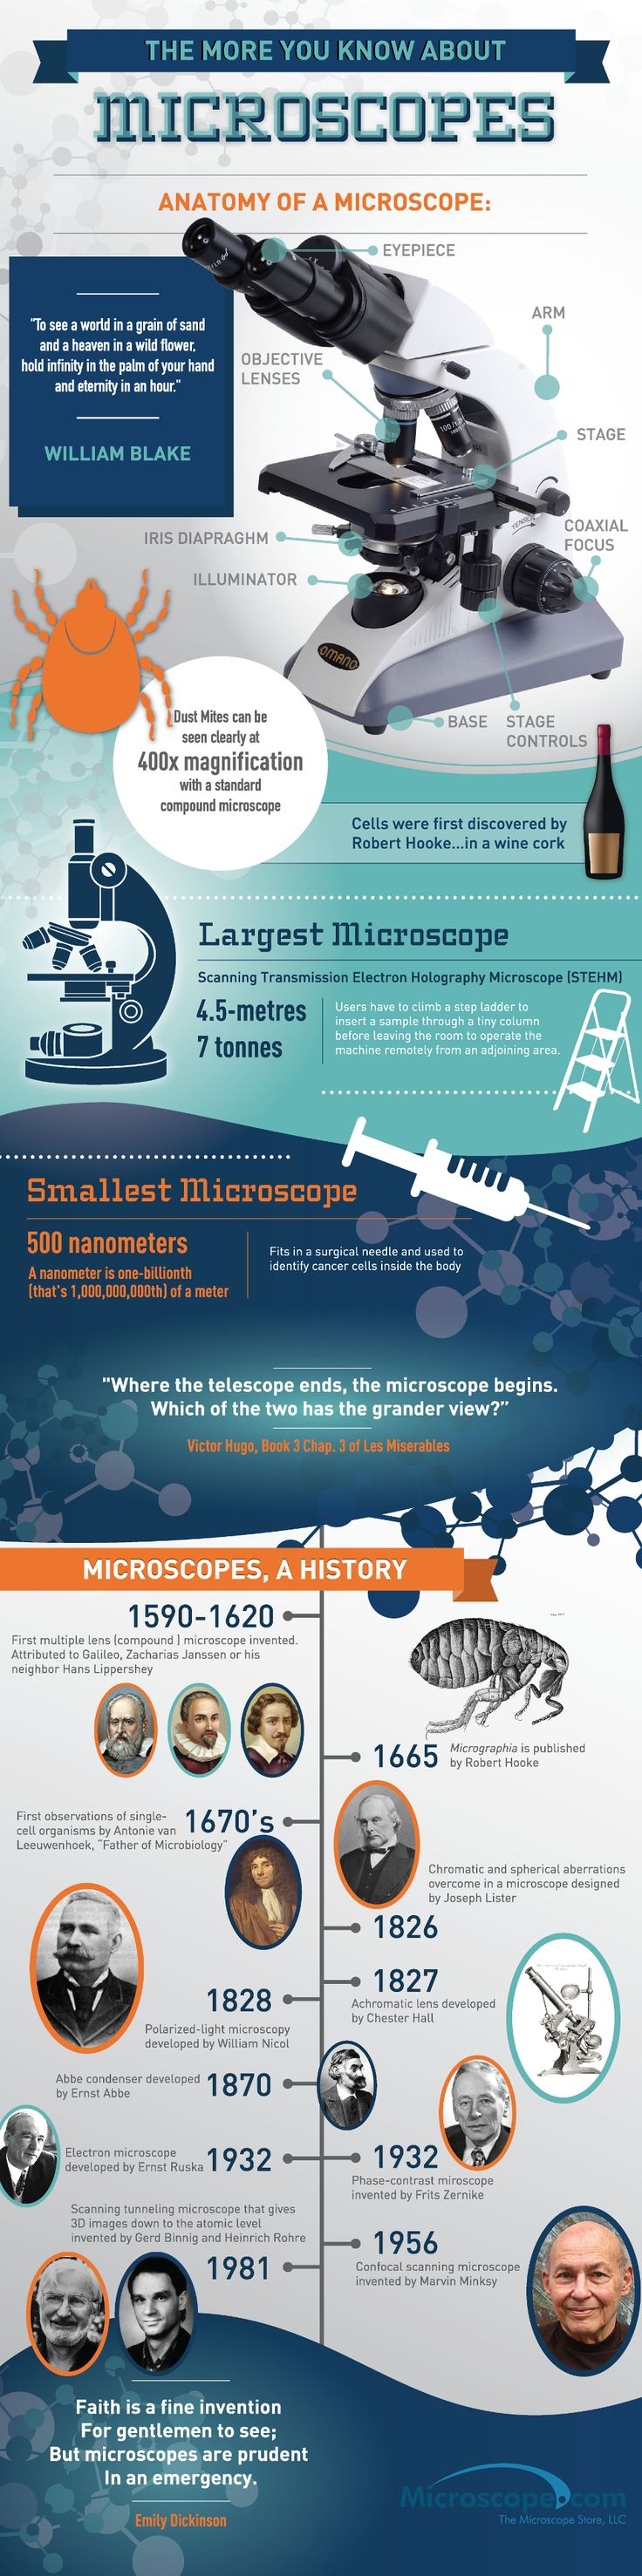 The More You Know About Microscopes